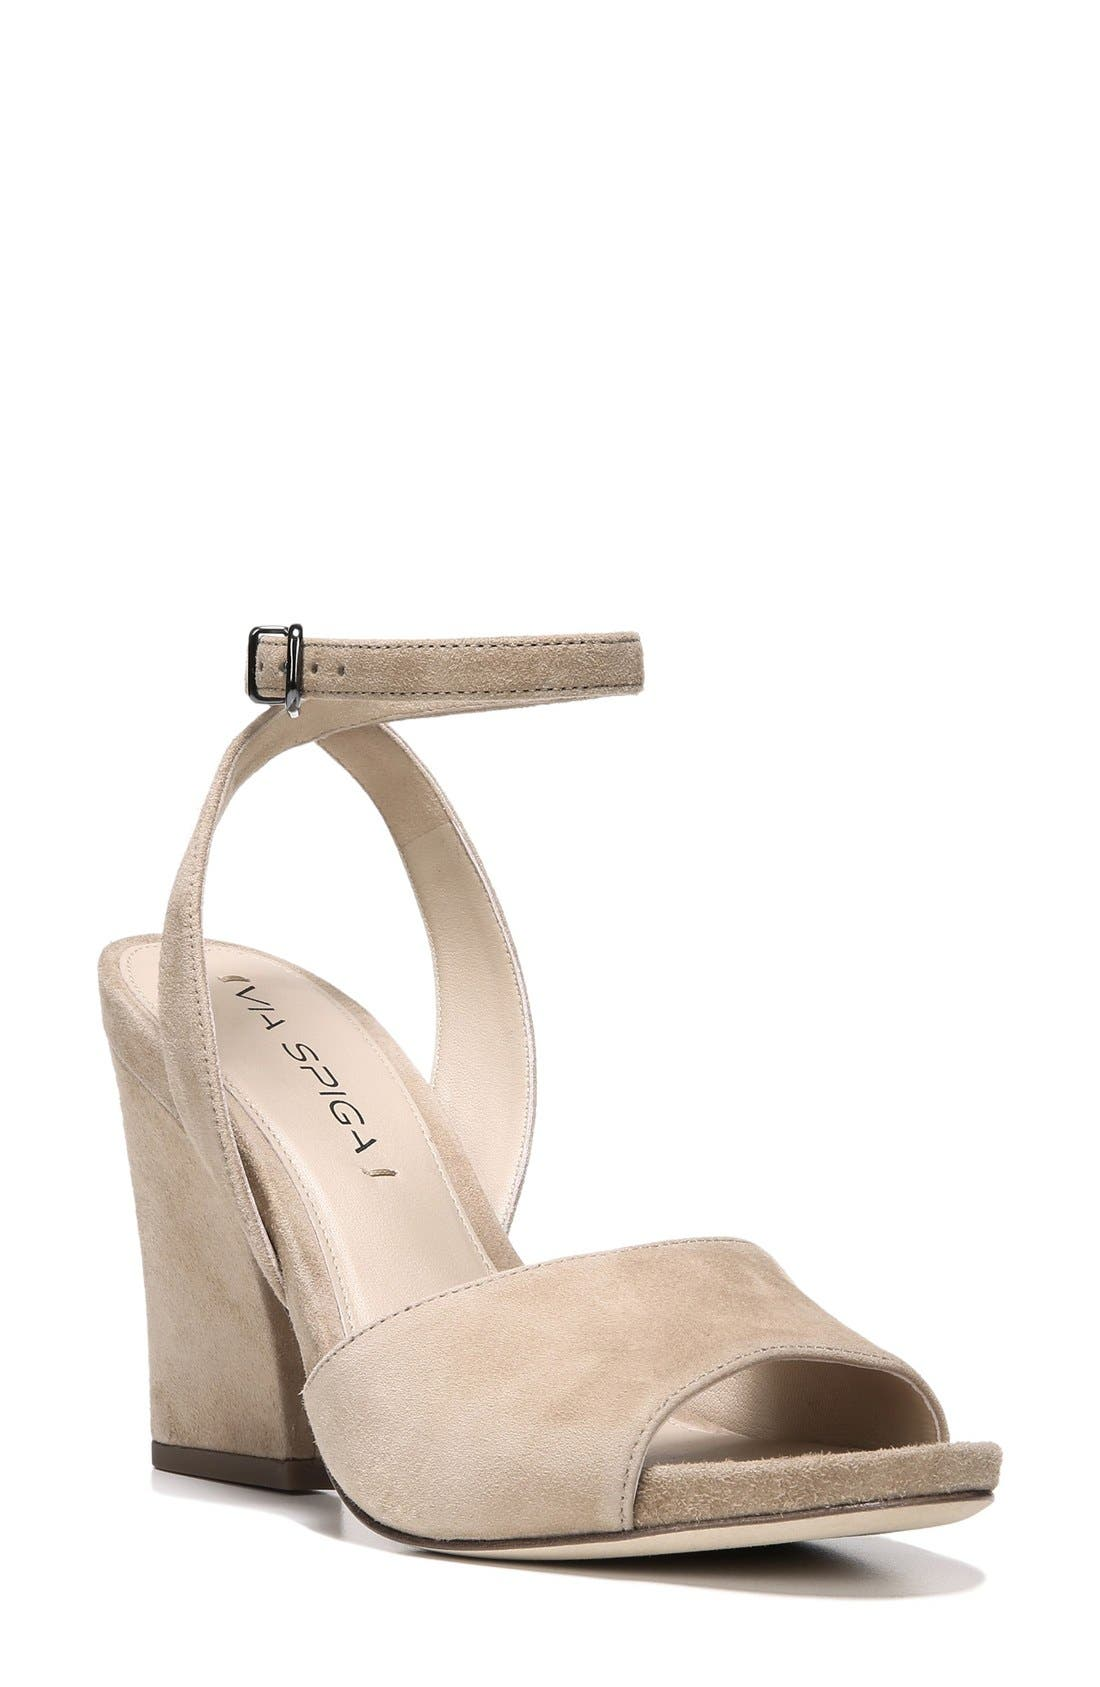 'Piper' Ankle Strap Sandal,                             Main thumbnail 1, color,                             Light Camel Suede